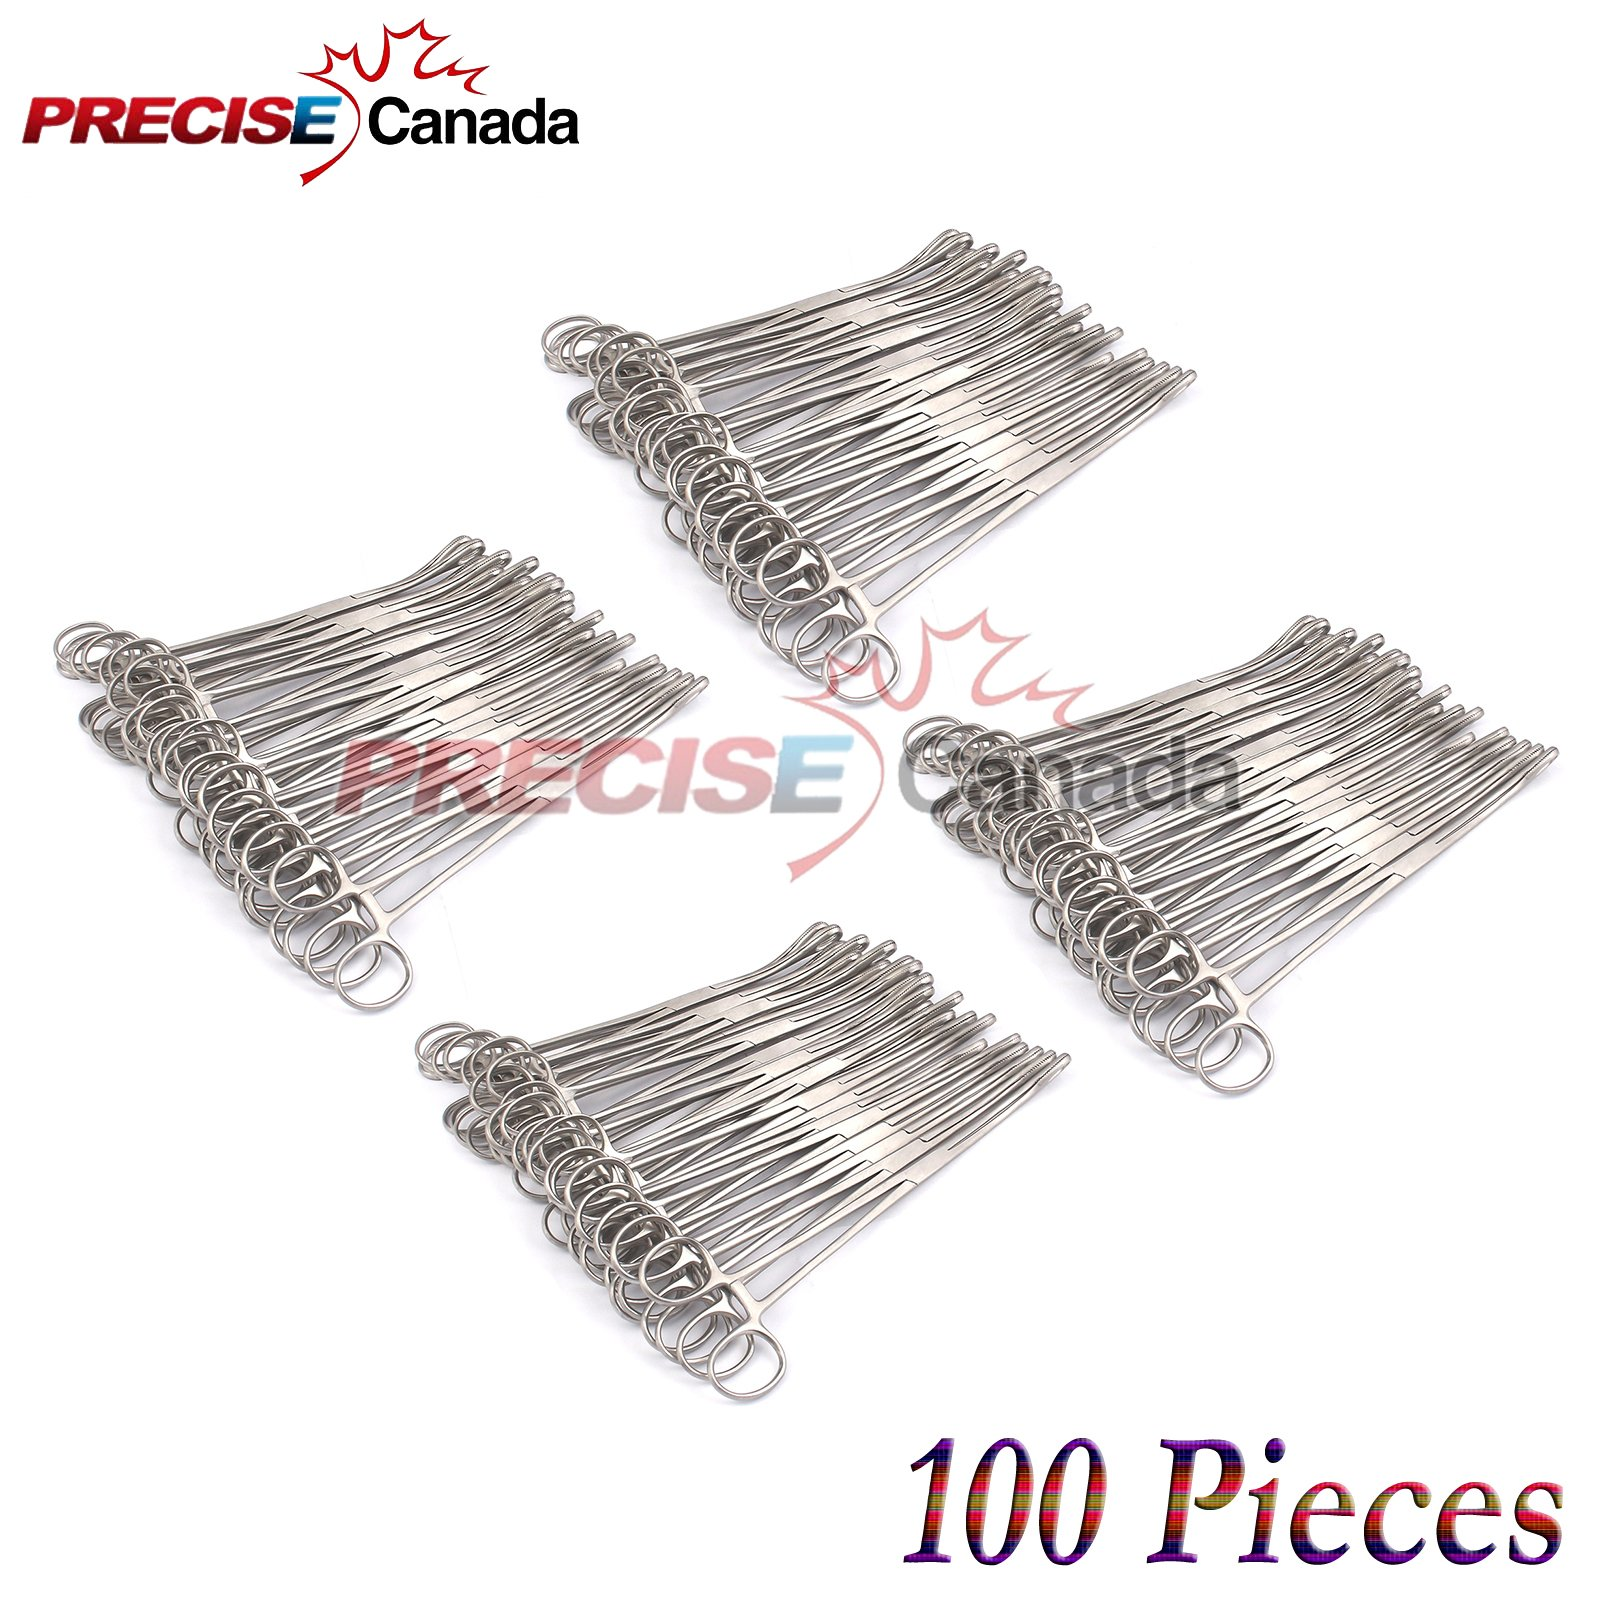 PRECISE CANADA: SET OF 100 SELF-LOCKING SPONGE FORCEPS CURVED 10'' BODY PIERCING STAINLESS STEEL by PRECISE CANADA